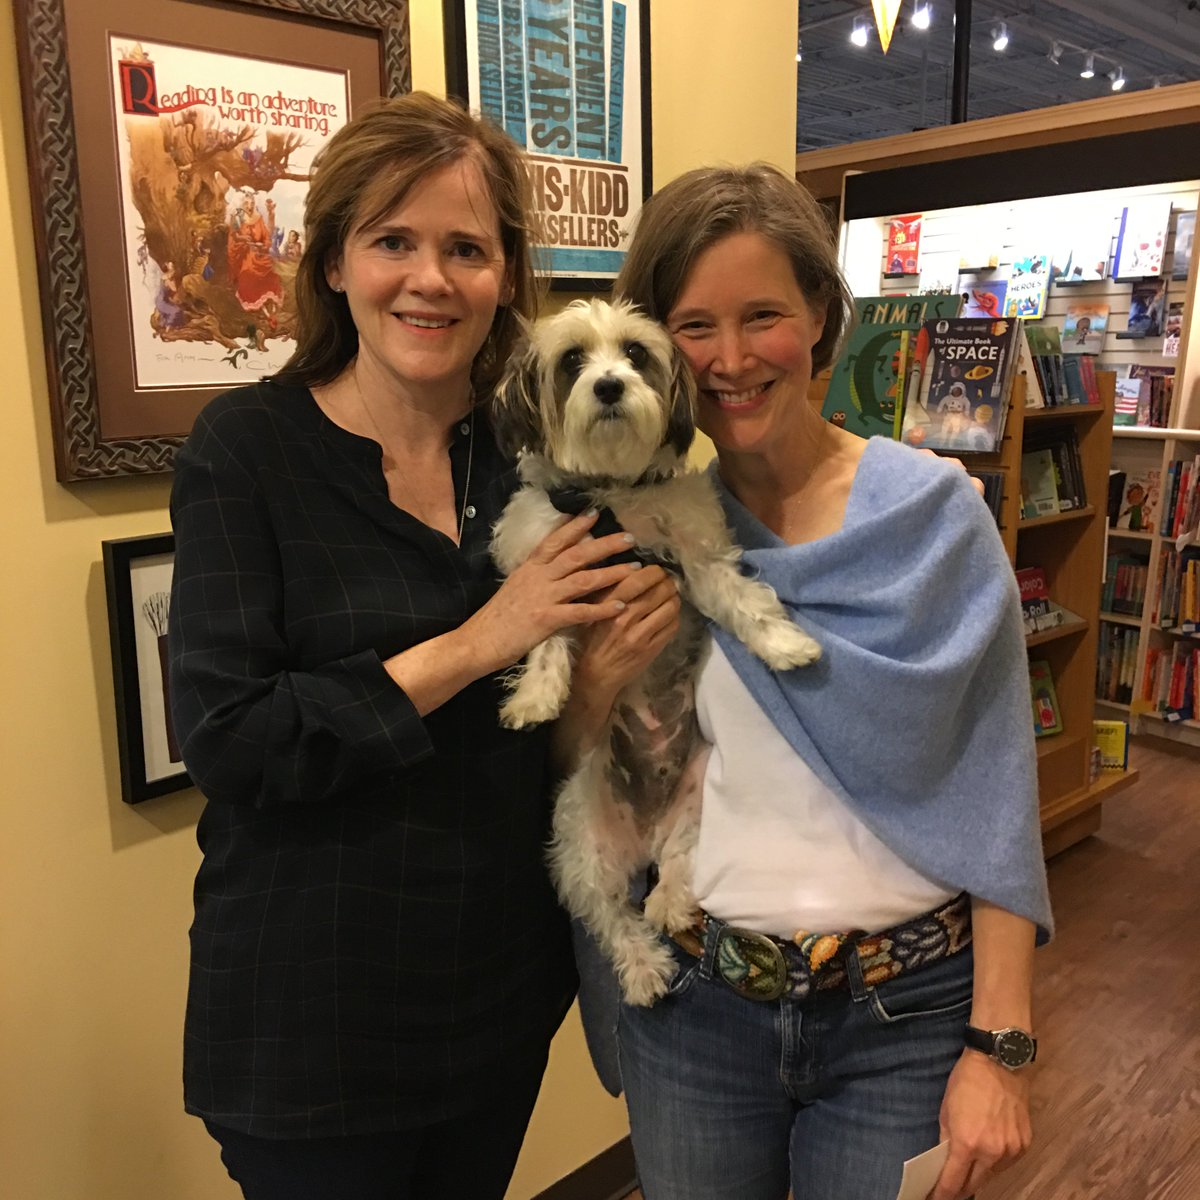 And you, Ann Patchett and Sparky, kisses for a terrific night in #Nashville. @ParnassusBooks1